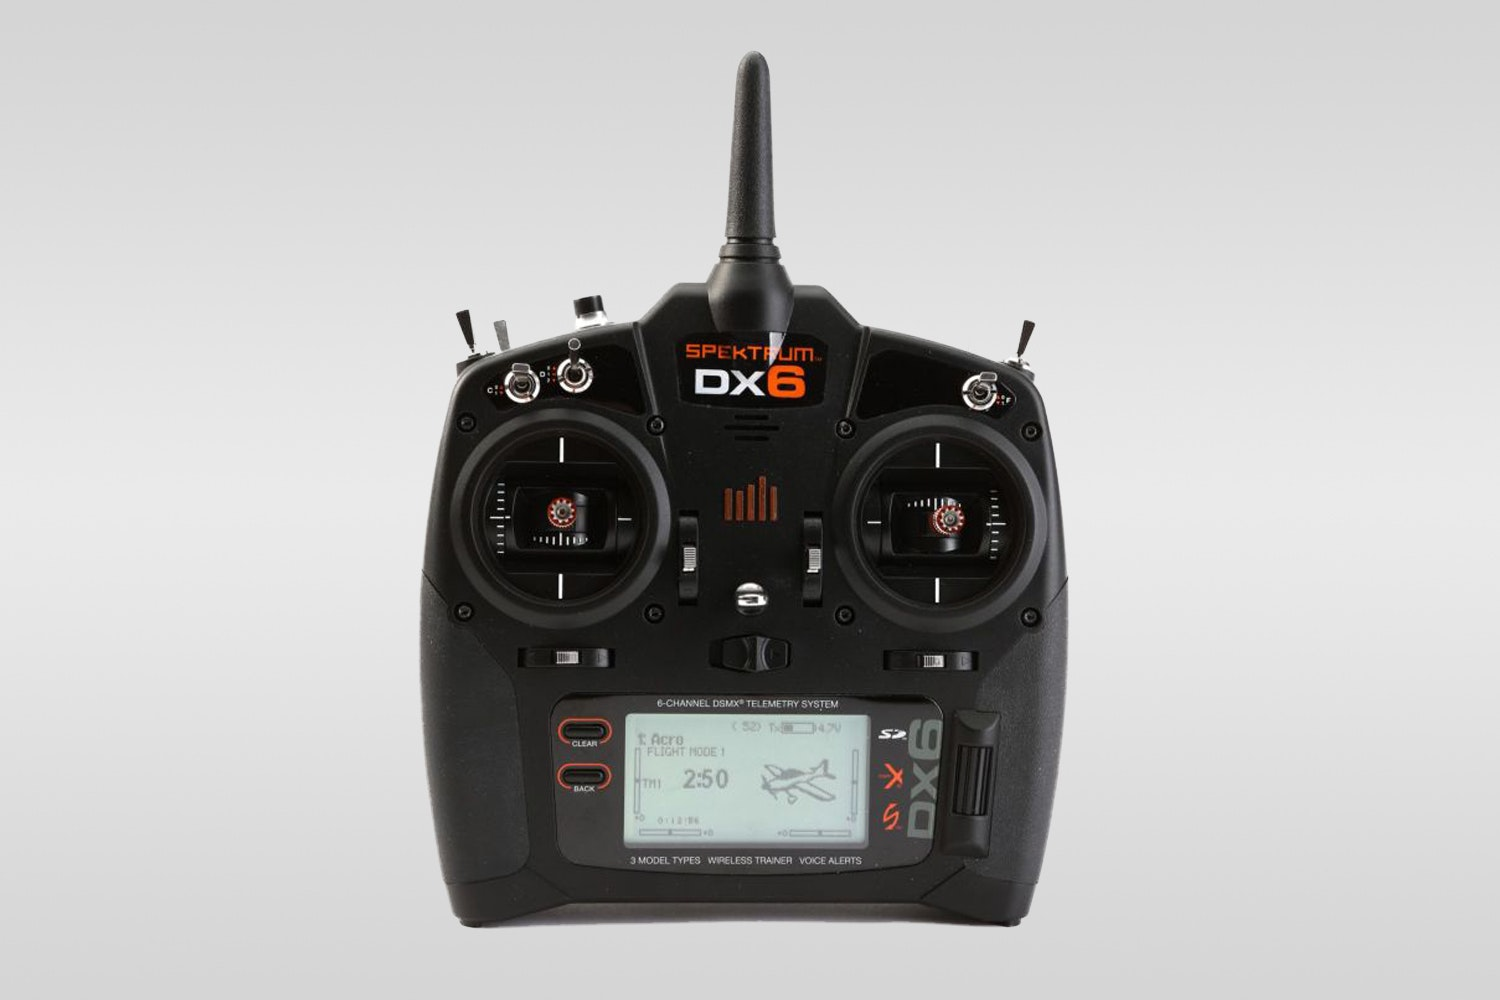 Spektrum DX6 transmitter (+ $200)